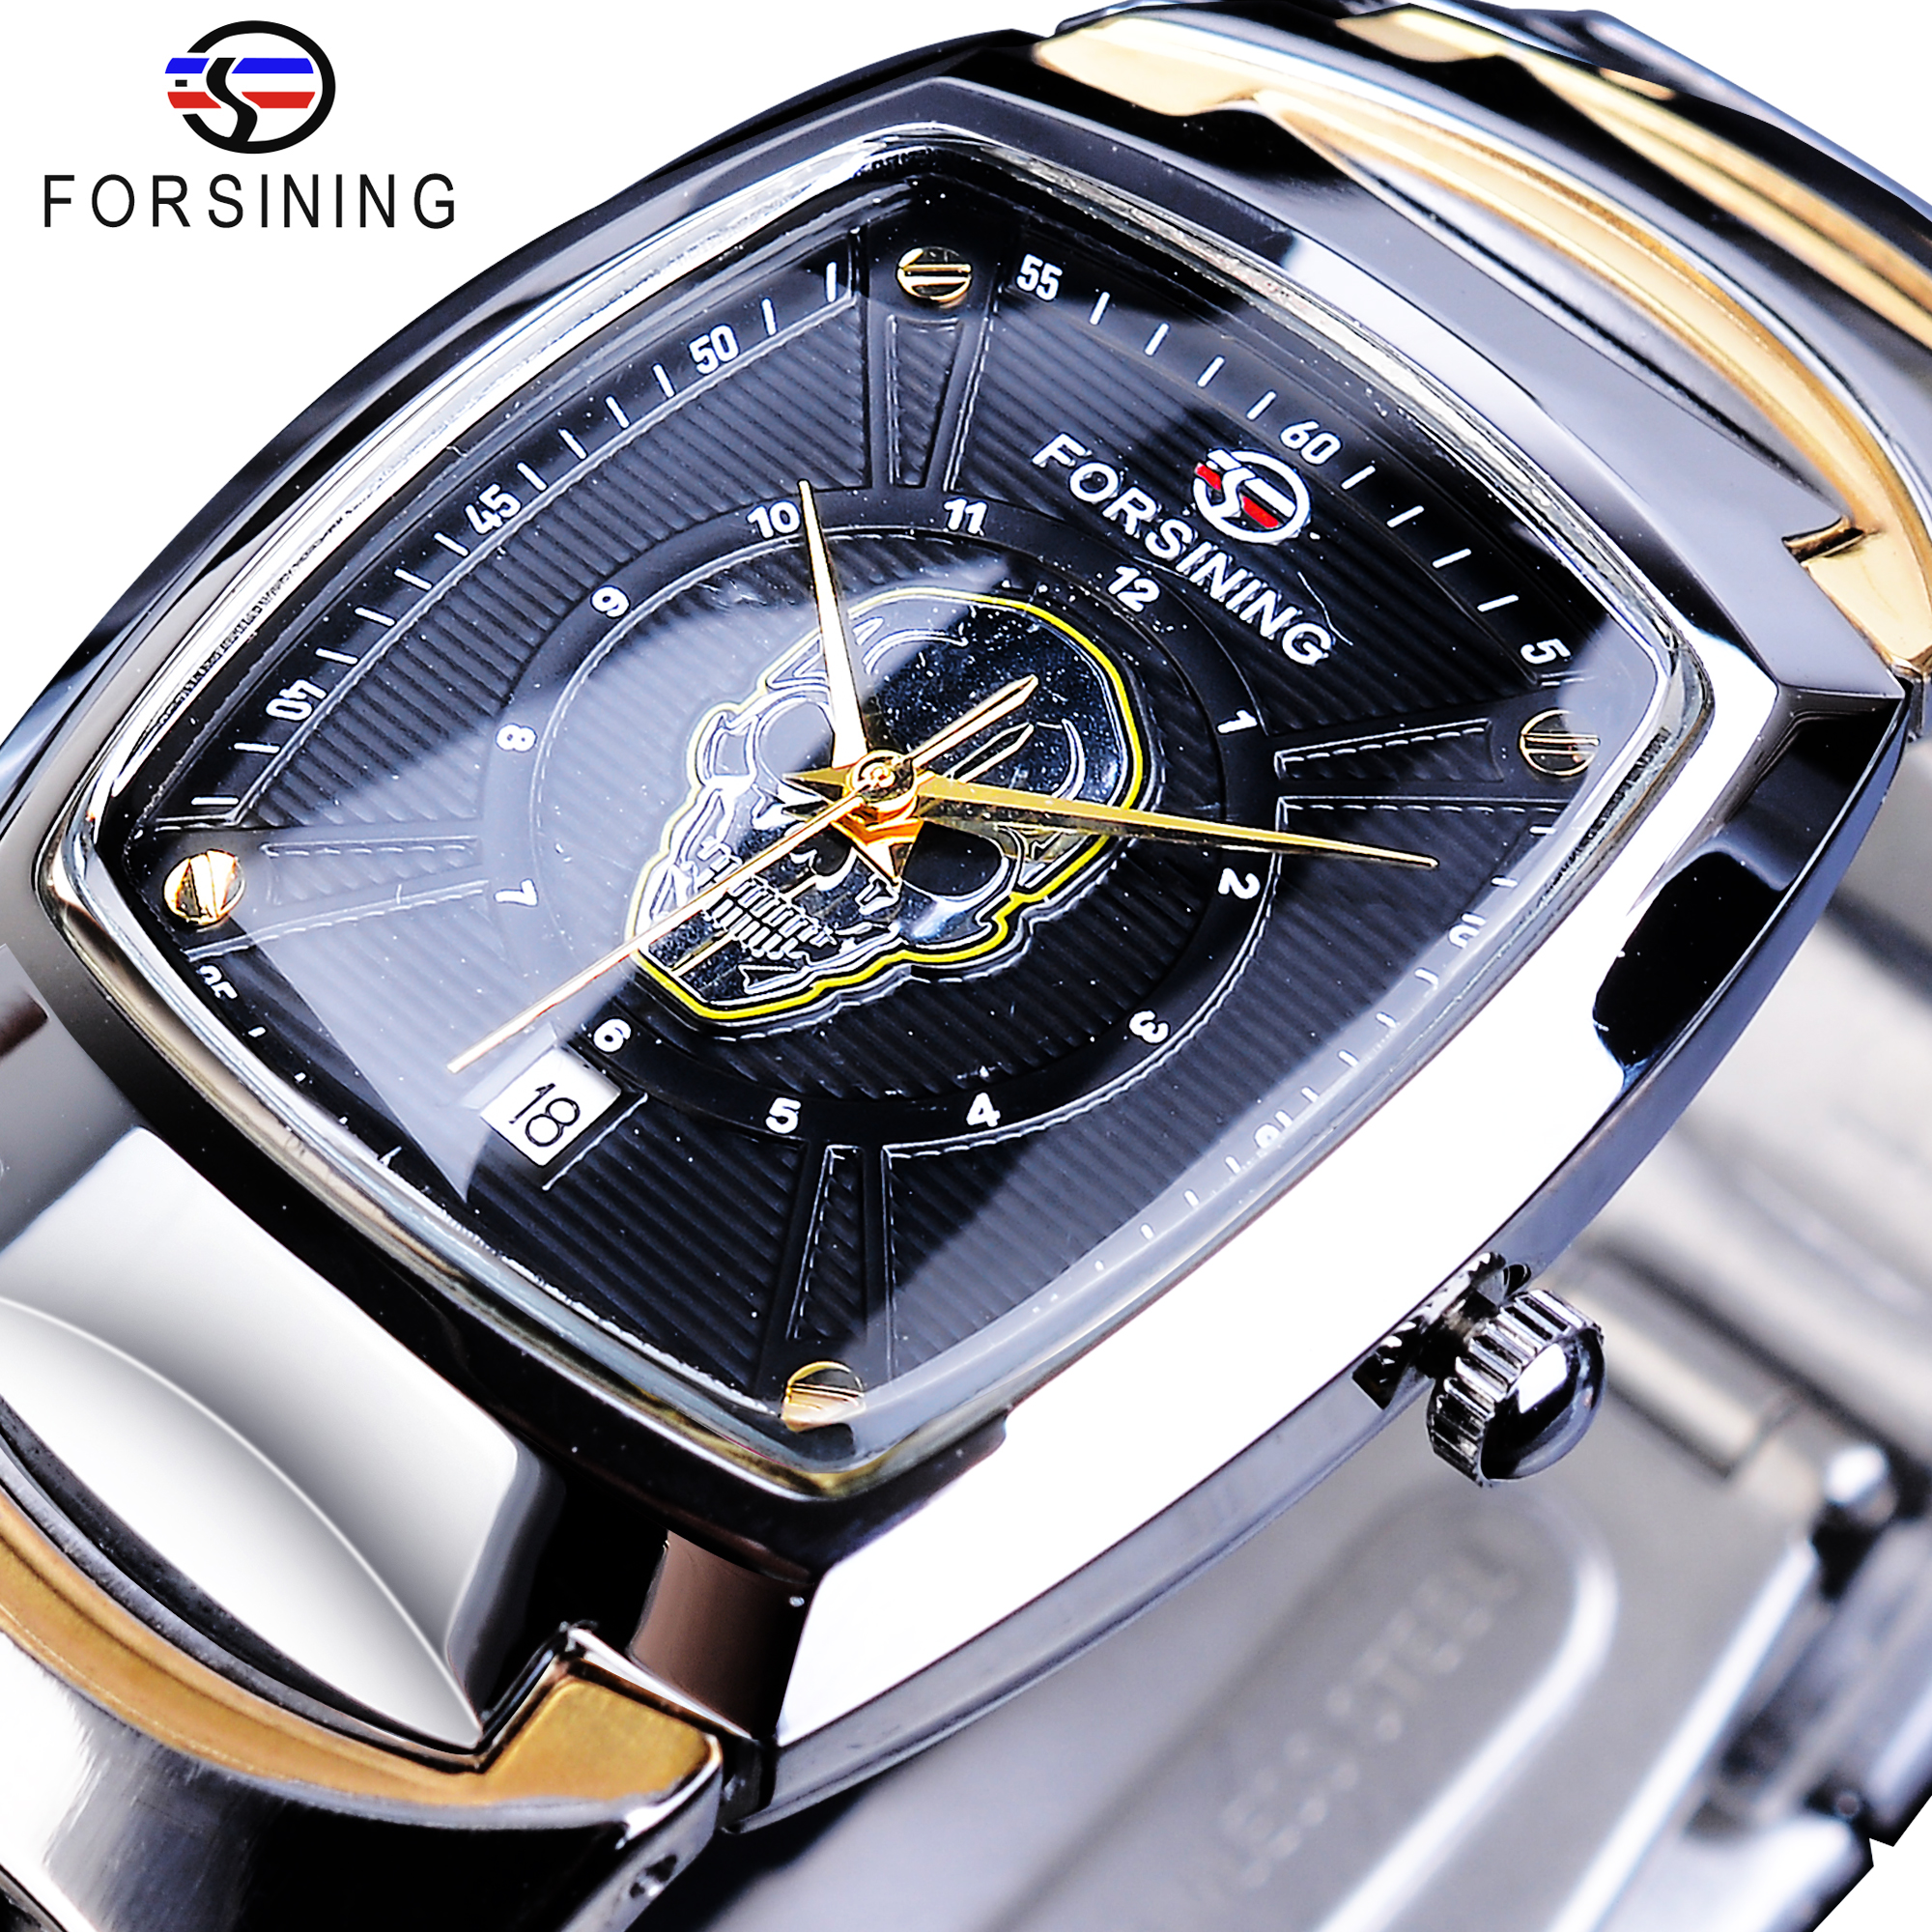 Forsining Skull Head Design Casual Watch Date Function Stainless Steel Band Men Wristwatches Ghost Skeleton Pattern Quartz Clock